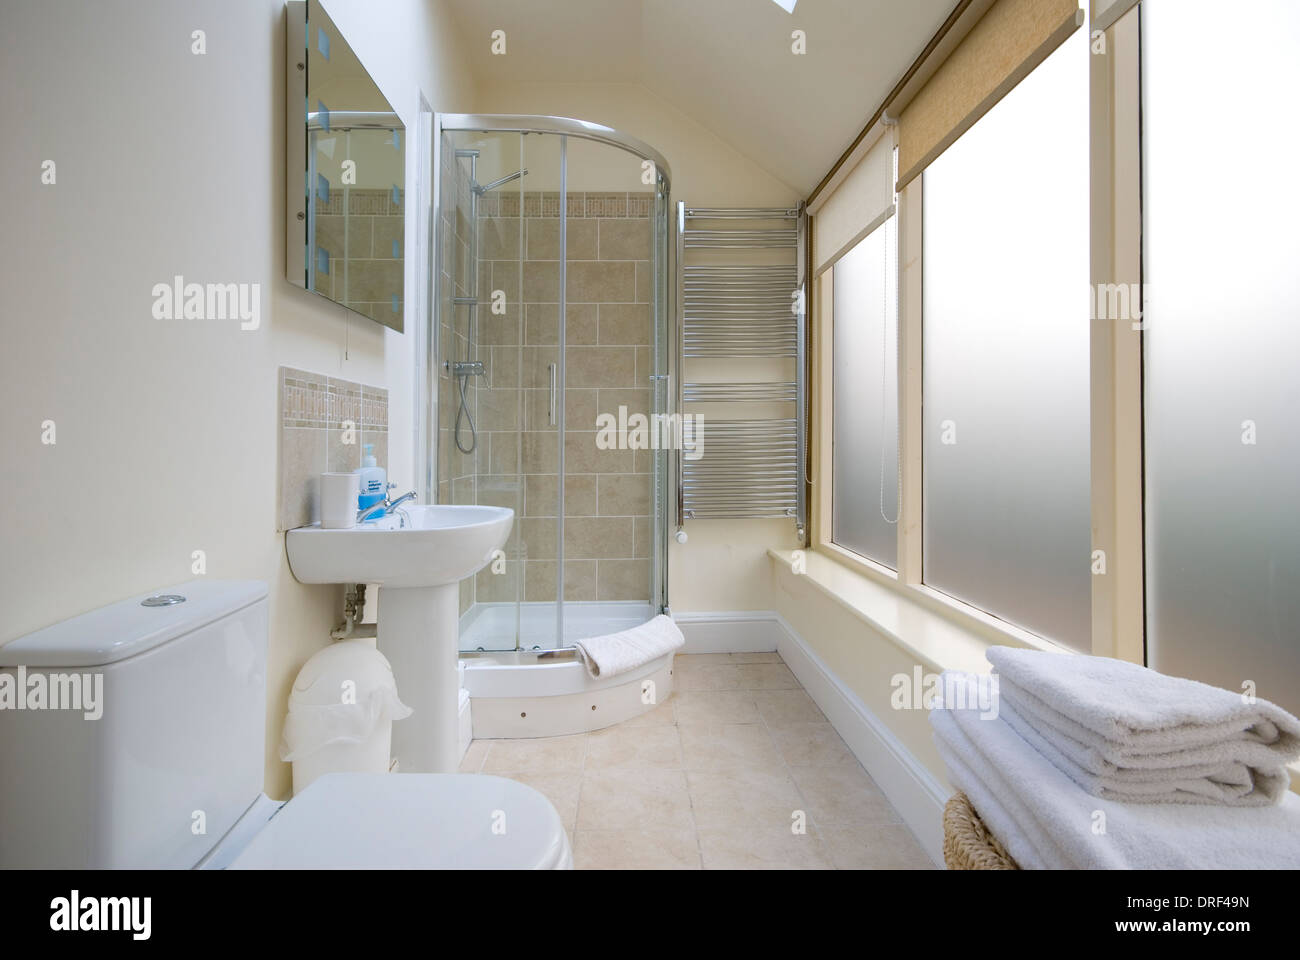 Long thin shower room with large opaque windows - Stock Image